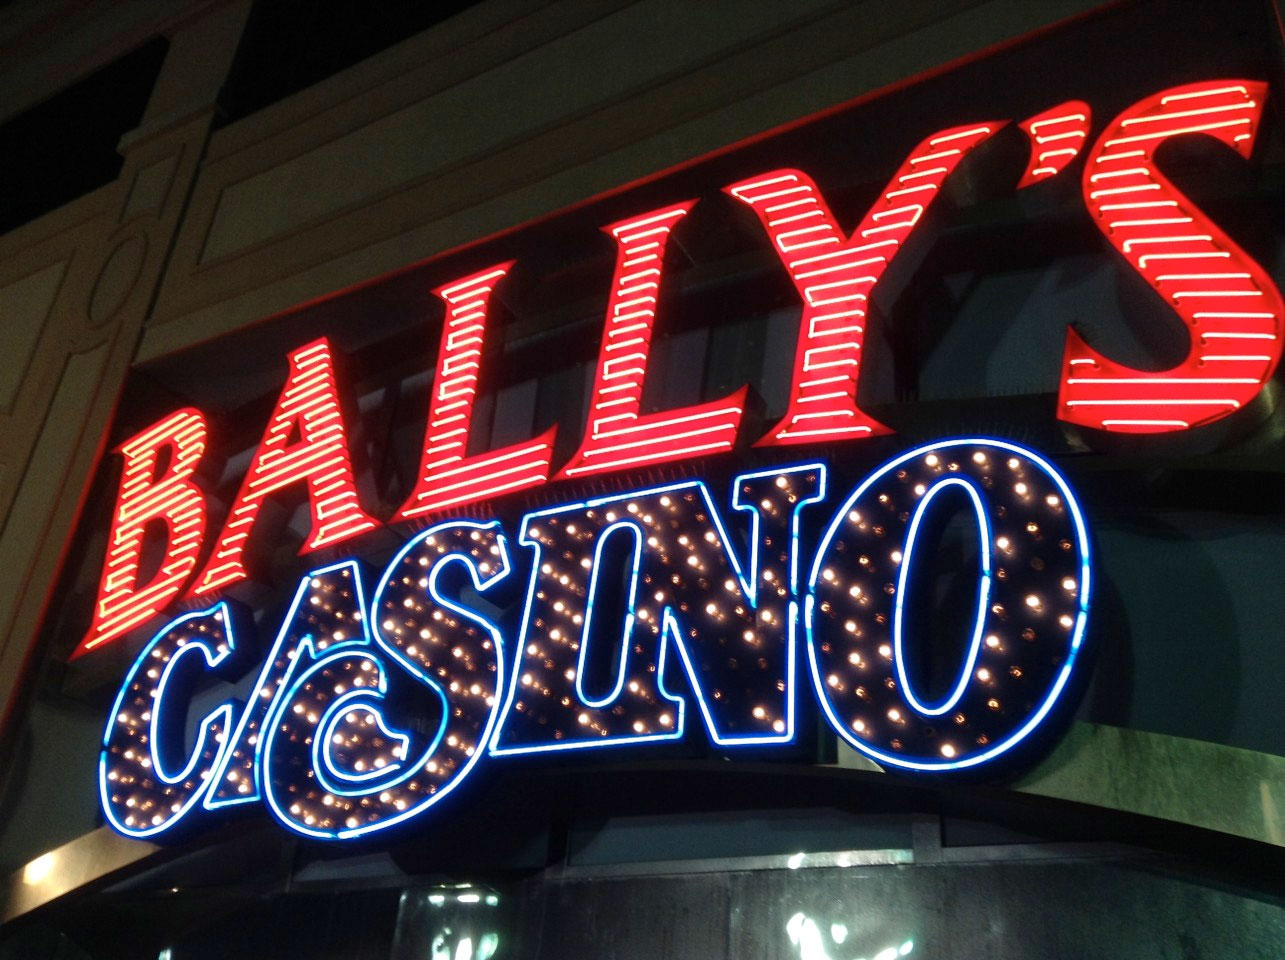 Bally's in Atlantic City